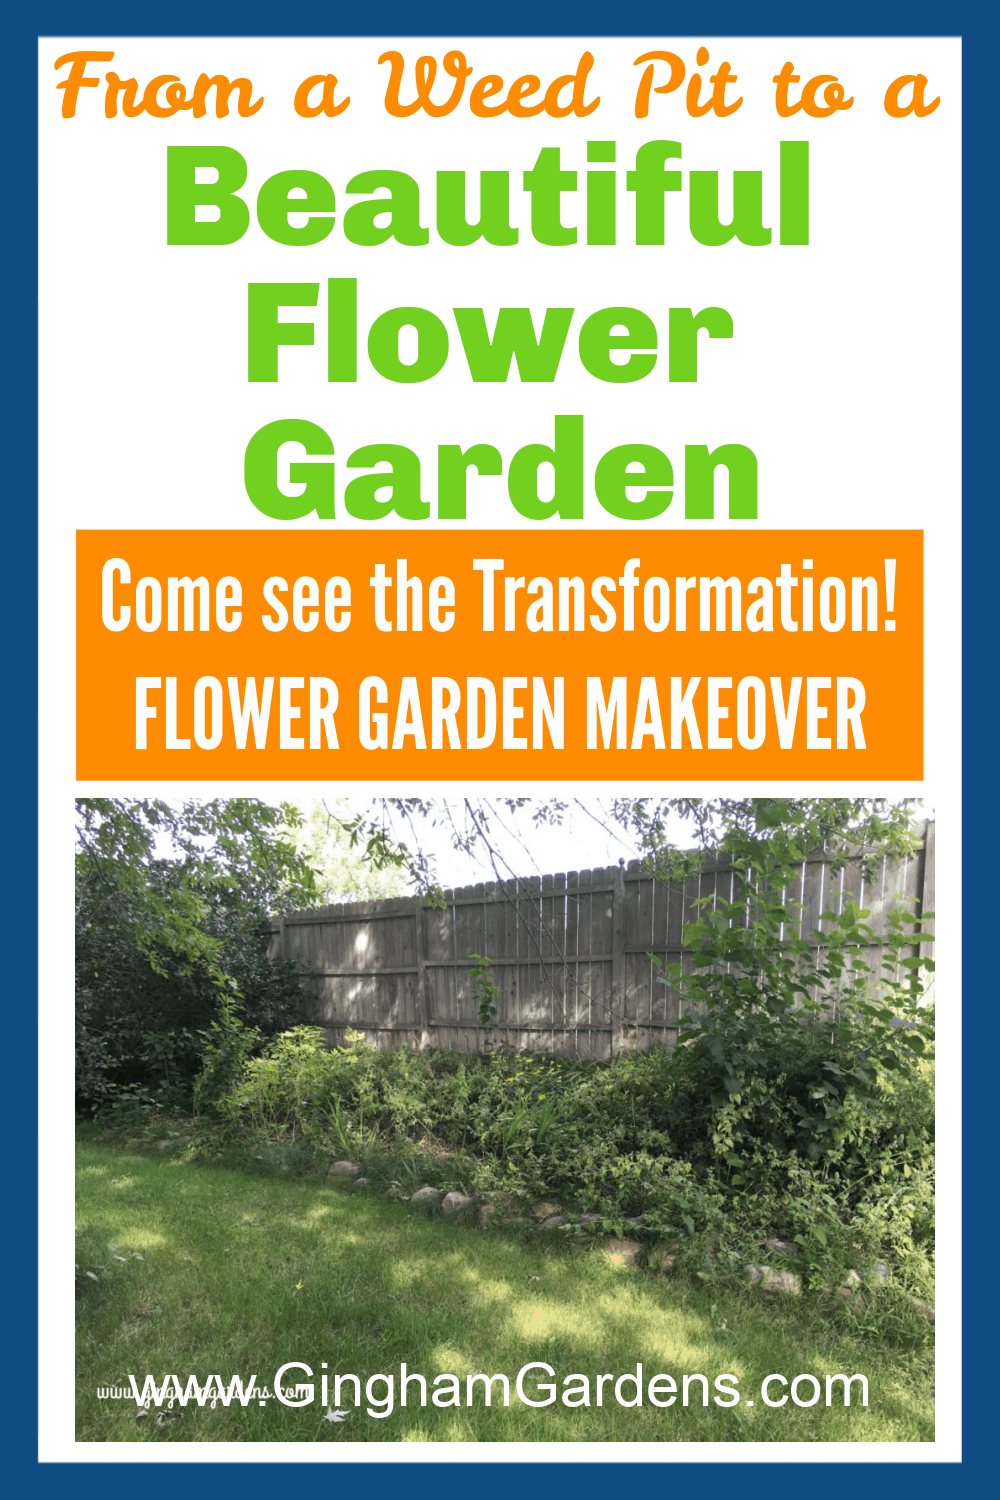 Image of a Weed pit garden with text overlay - from a weed pit to a Beautiful Garden